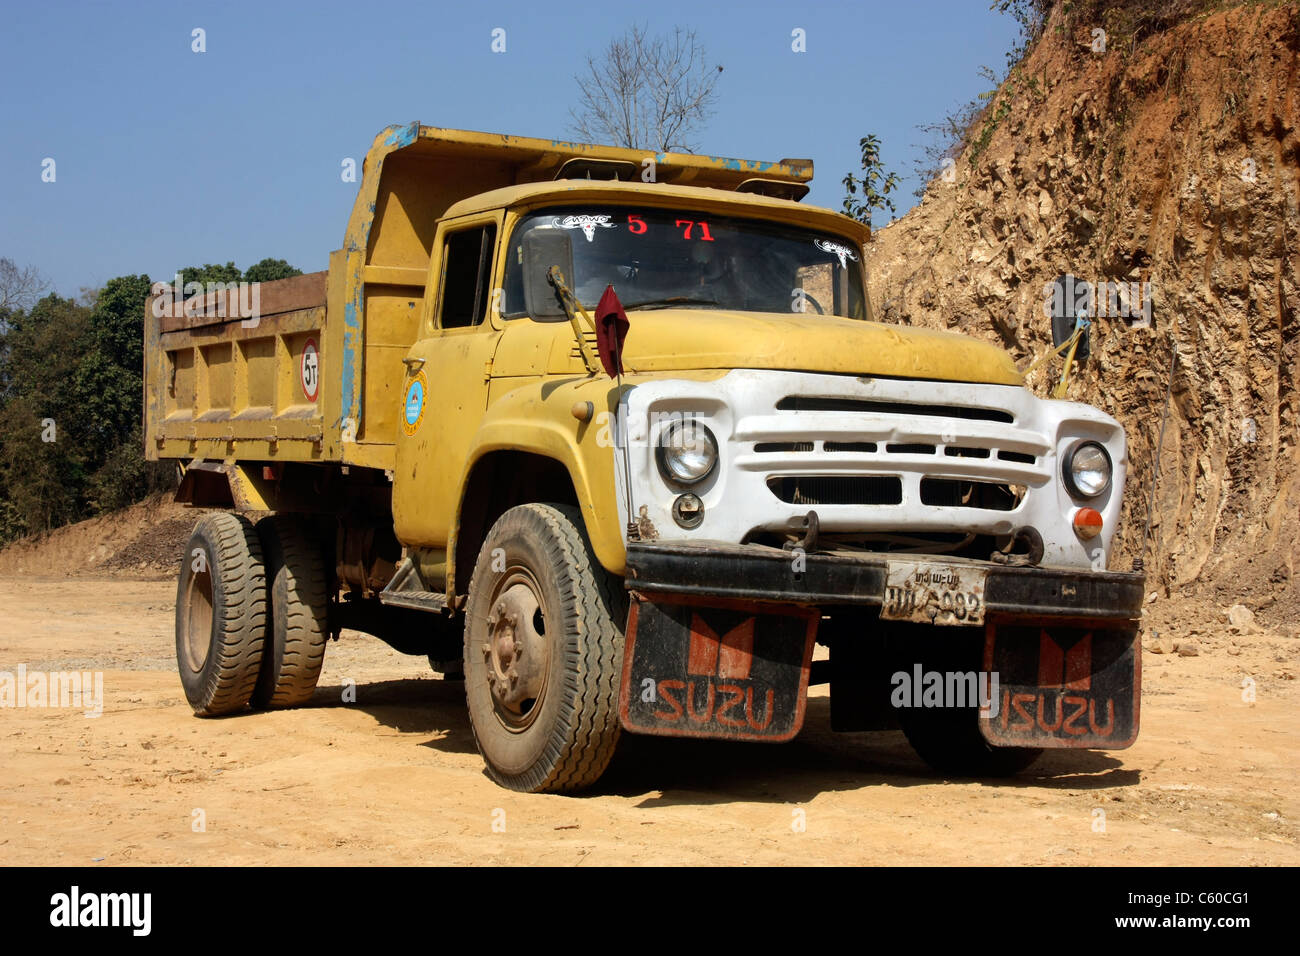 Old Russian Truck Stock Photos & Old Russian Truck Stock